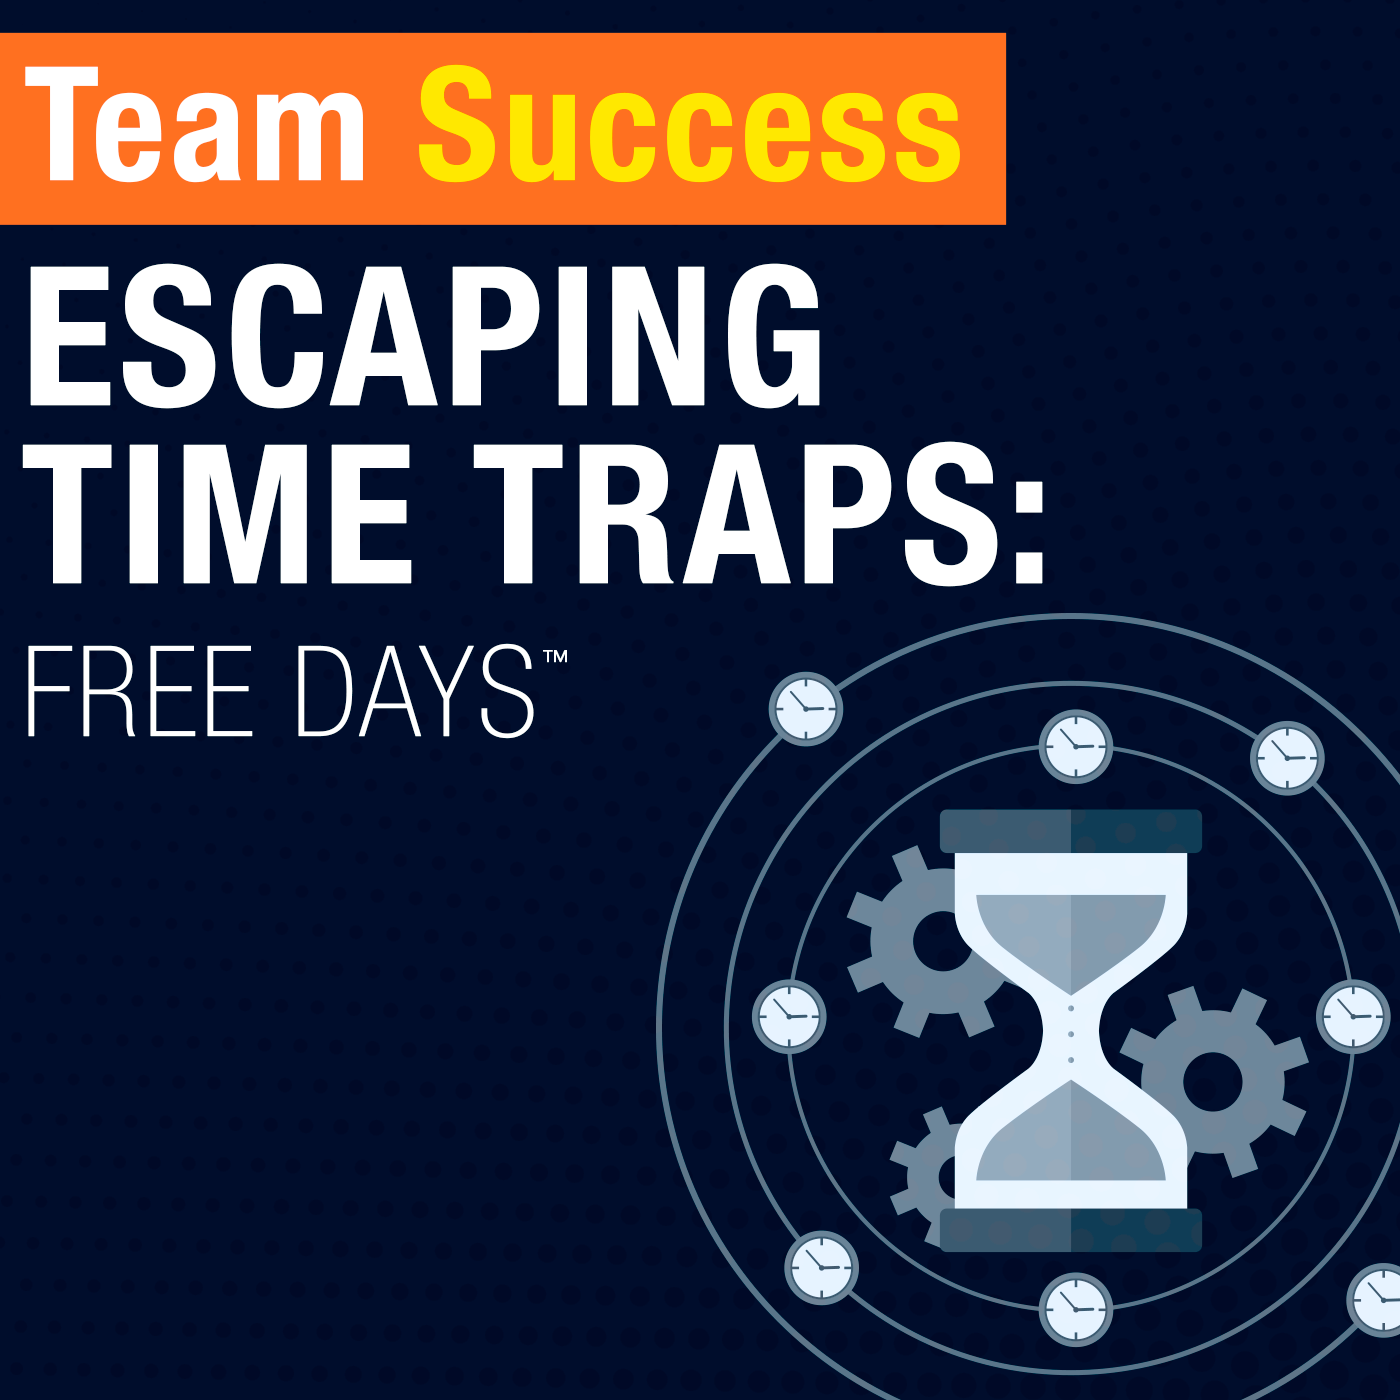 Escaping Time Traps Free Days